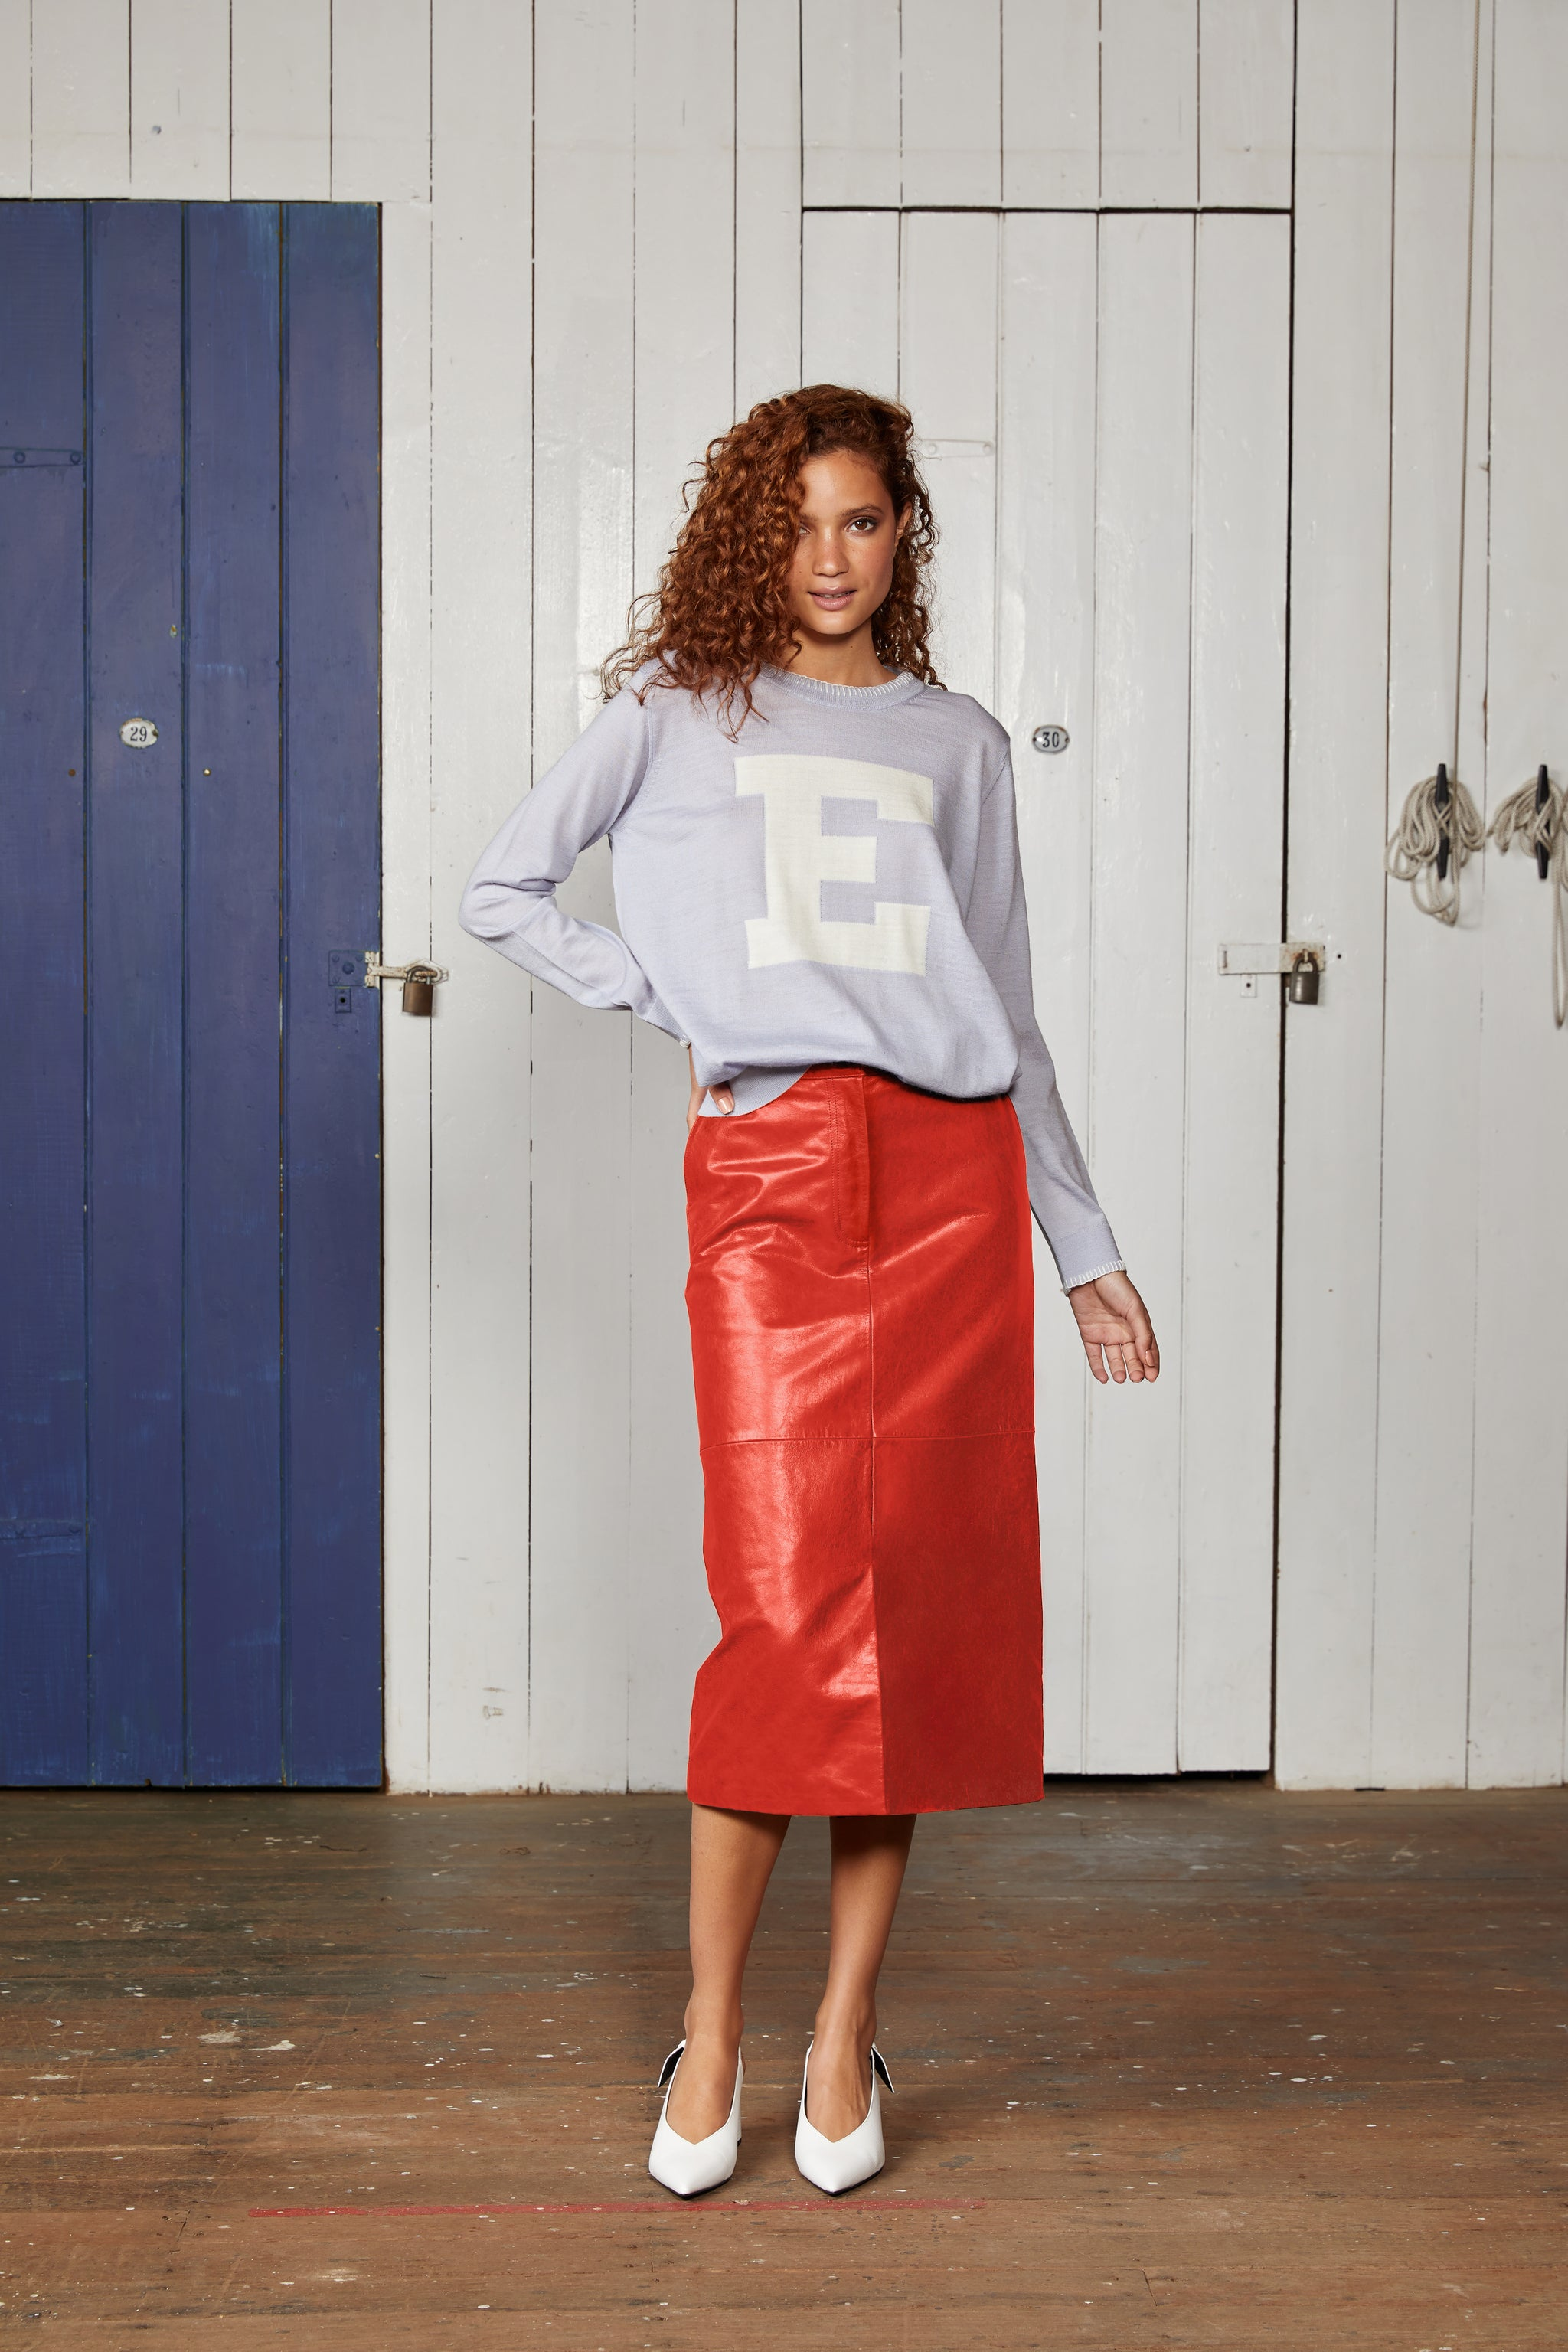 Binny Red Cutters Pencil Leather Midi Skirt with Pockets, Elastic Back and Centre Front Split